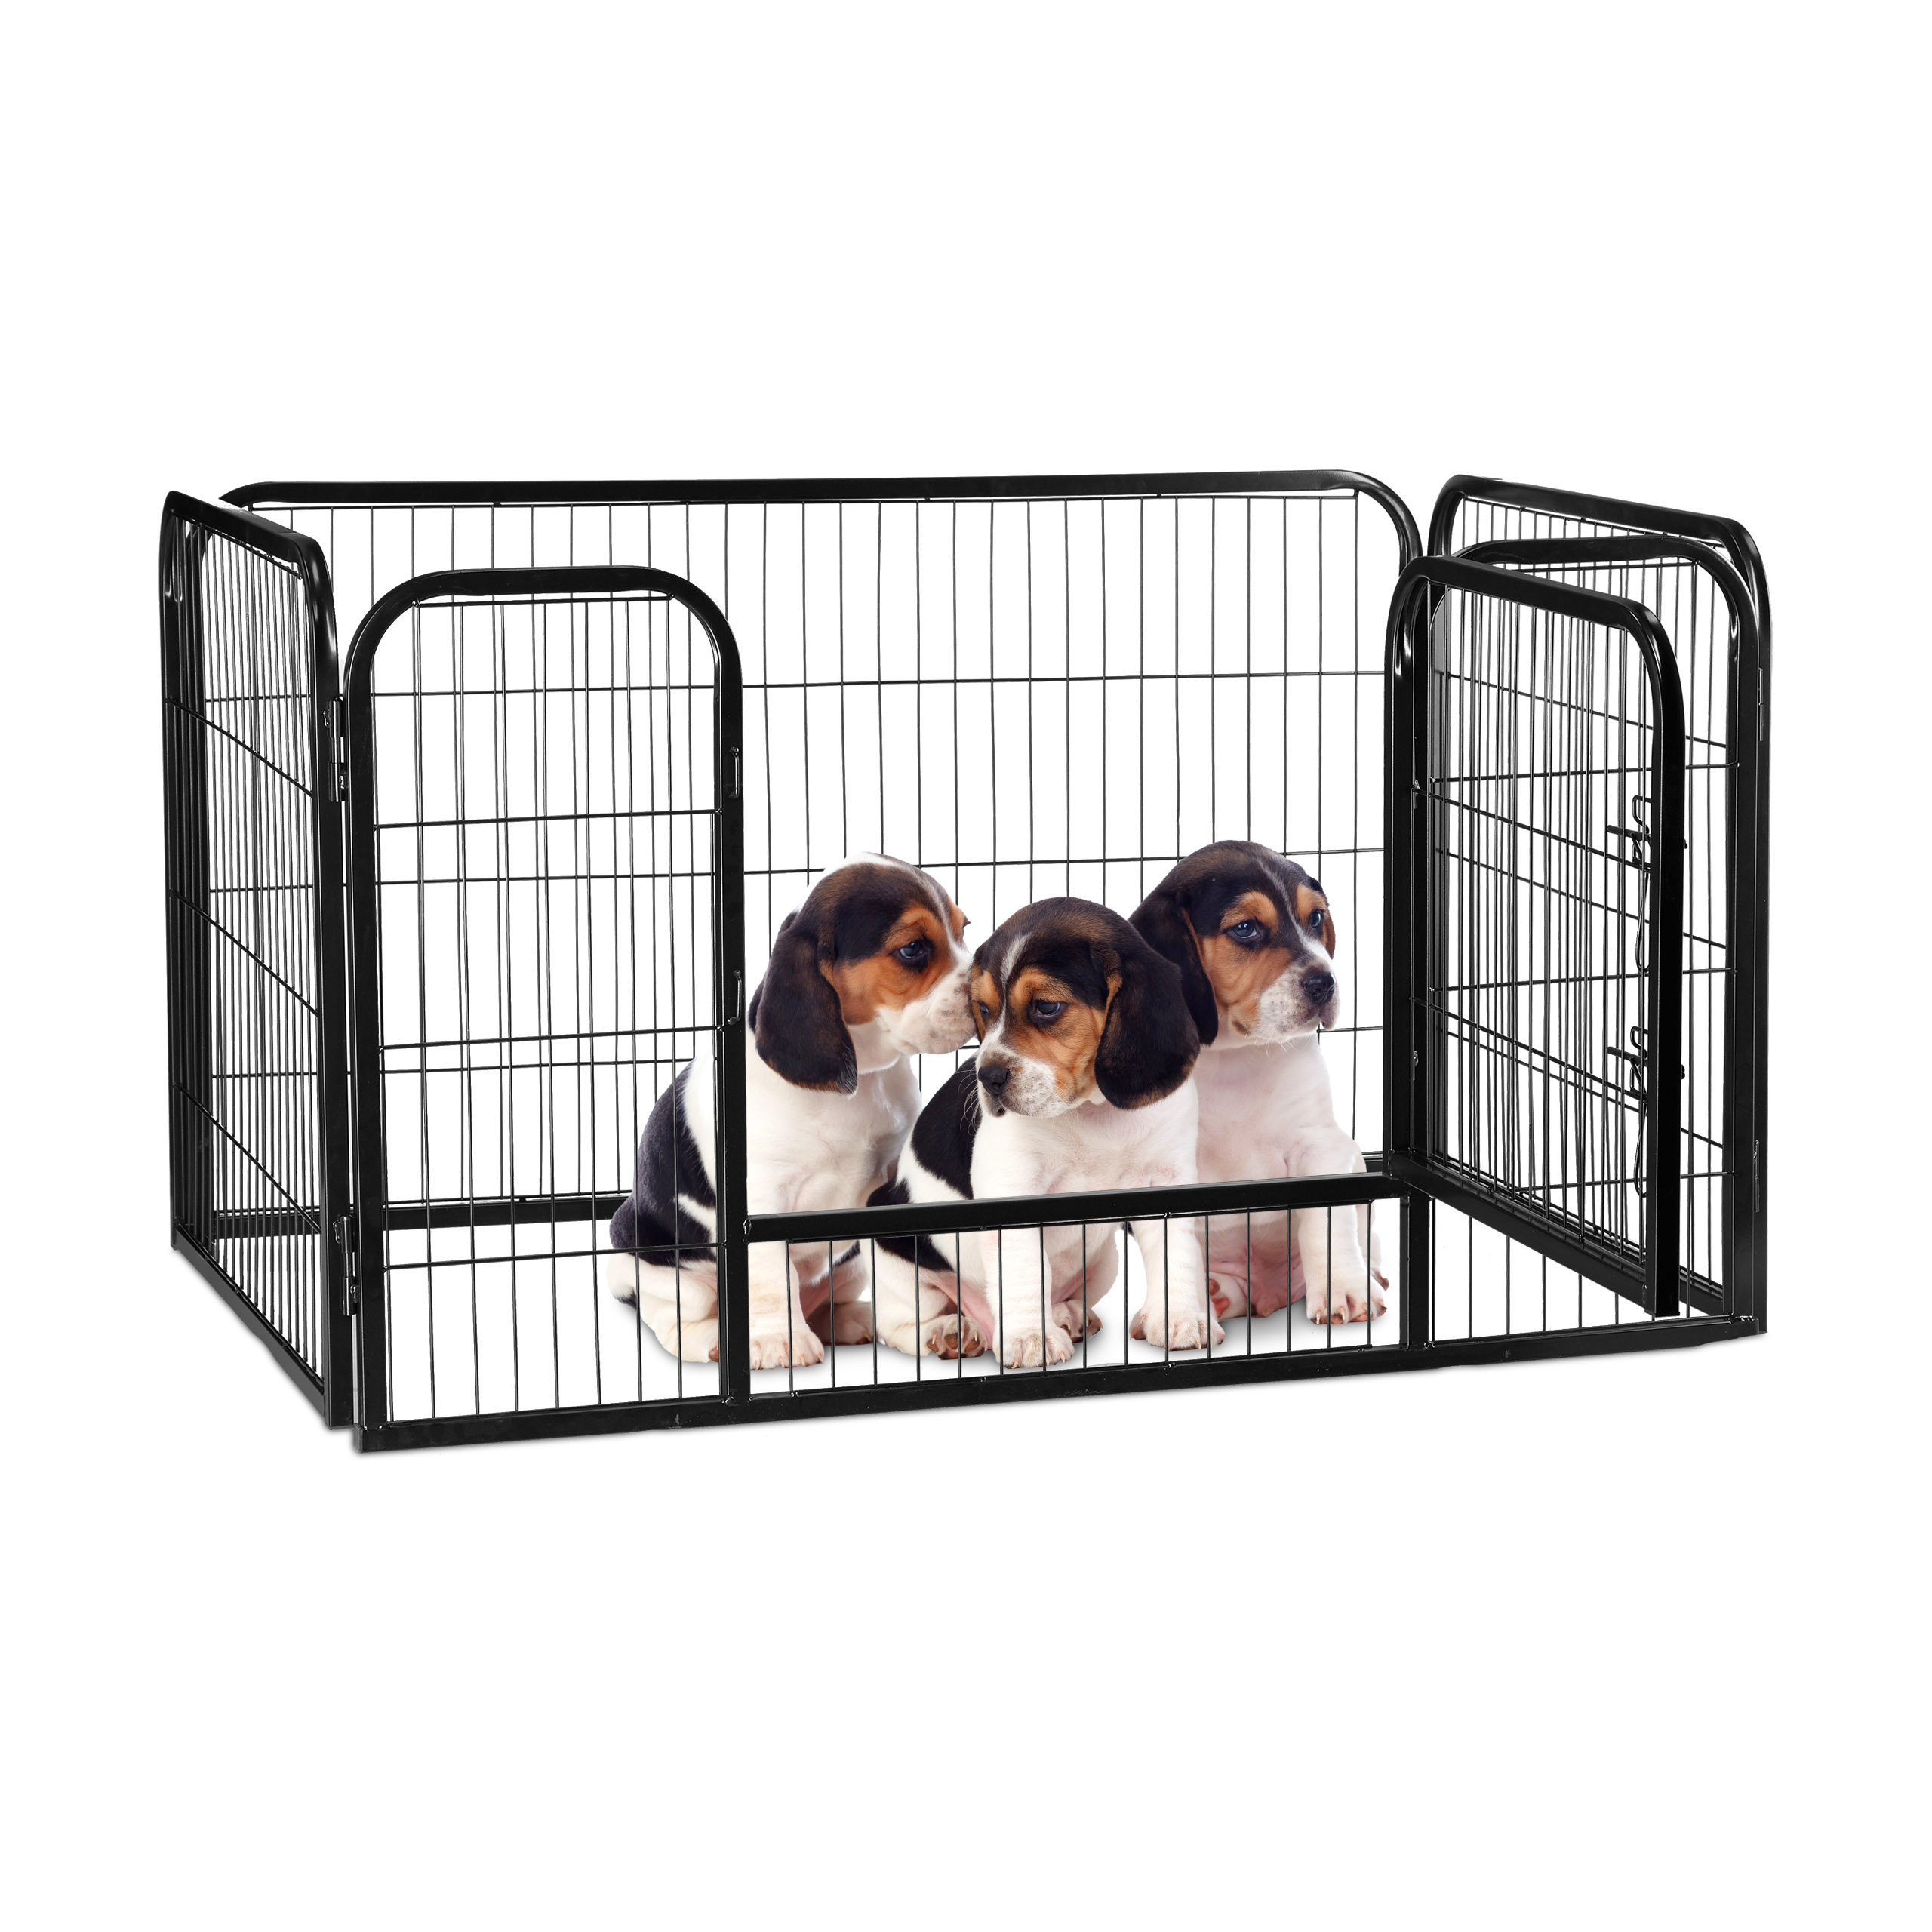 Relaxdays Whelping Pen for Puppies, Small Dogs and Rabbits, in- and Outdoors, Playpen, HWD 70 x 125 x 80 cm, Black by Relaxdays (Image #1)